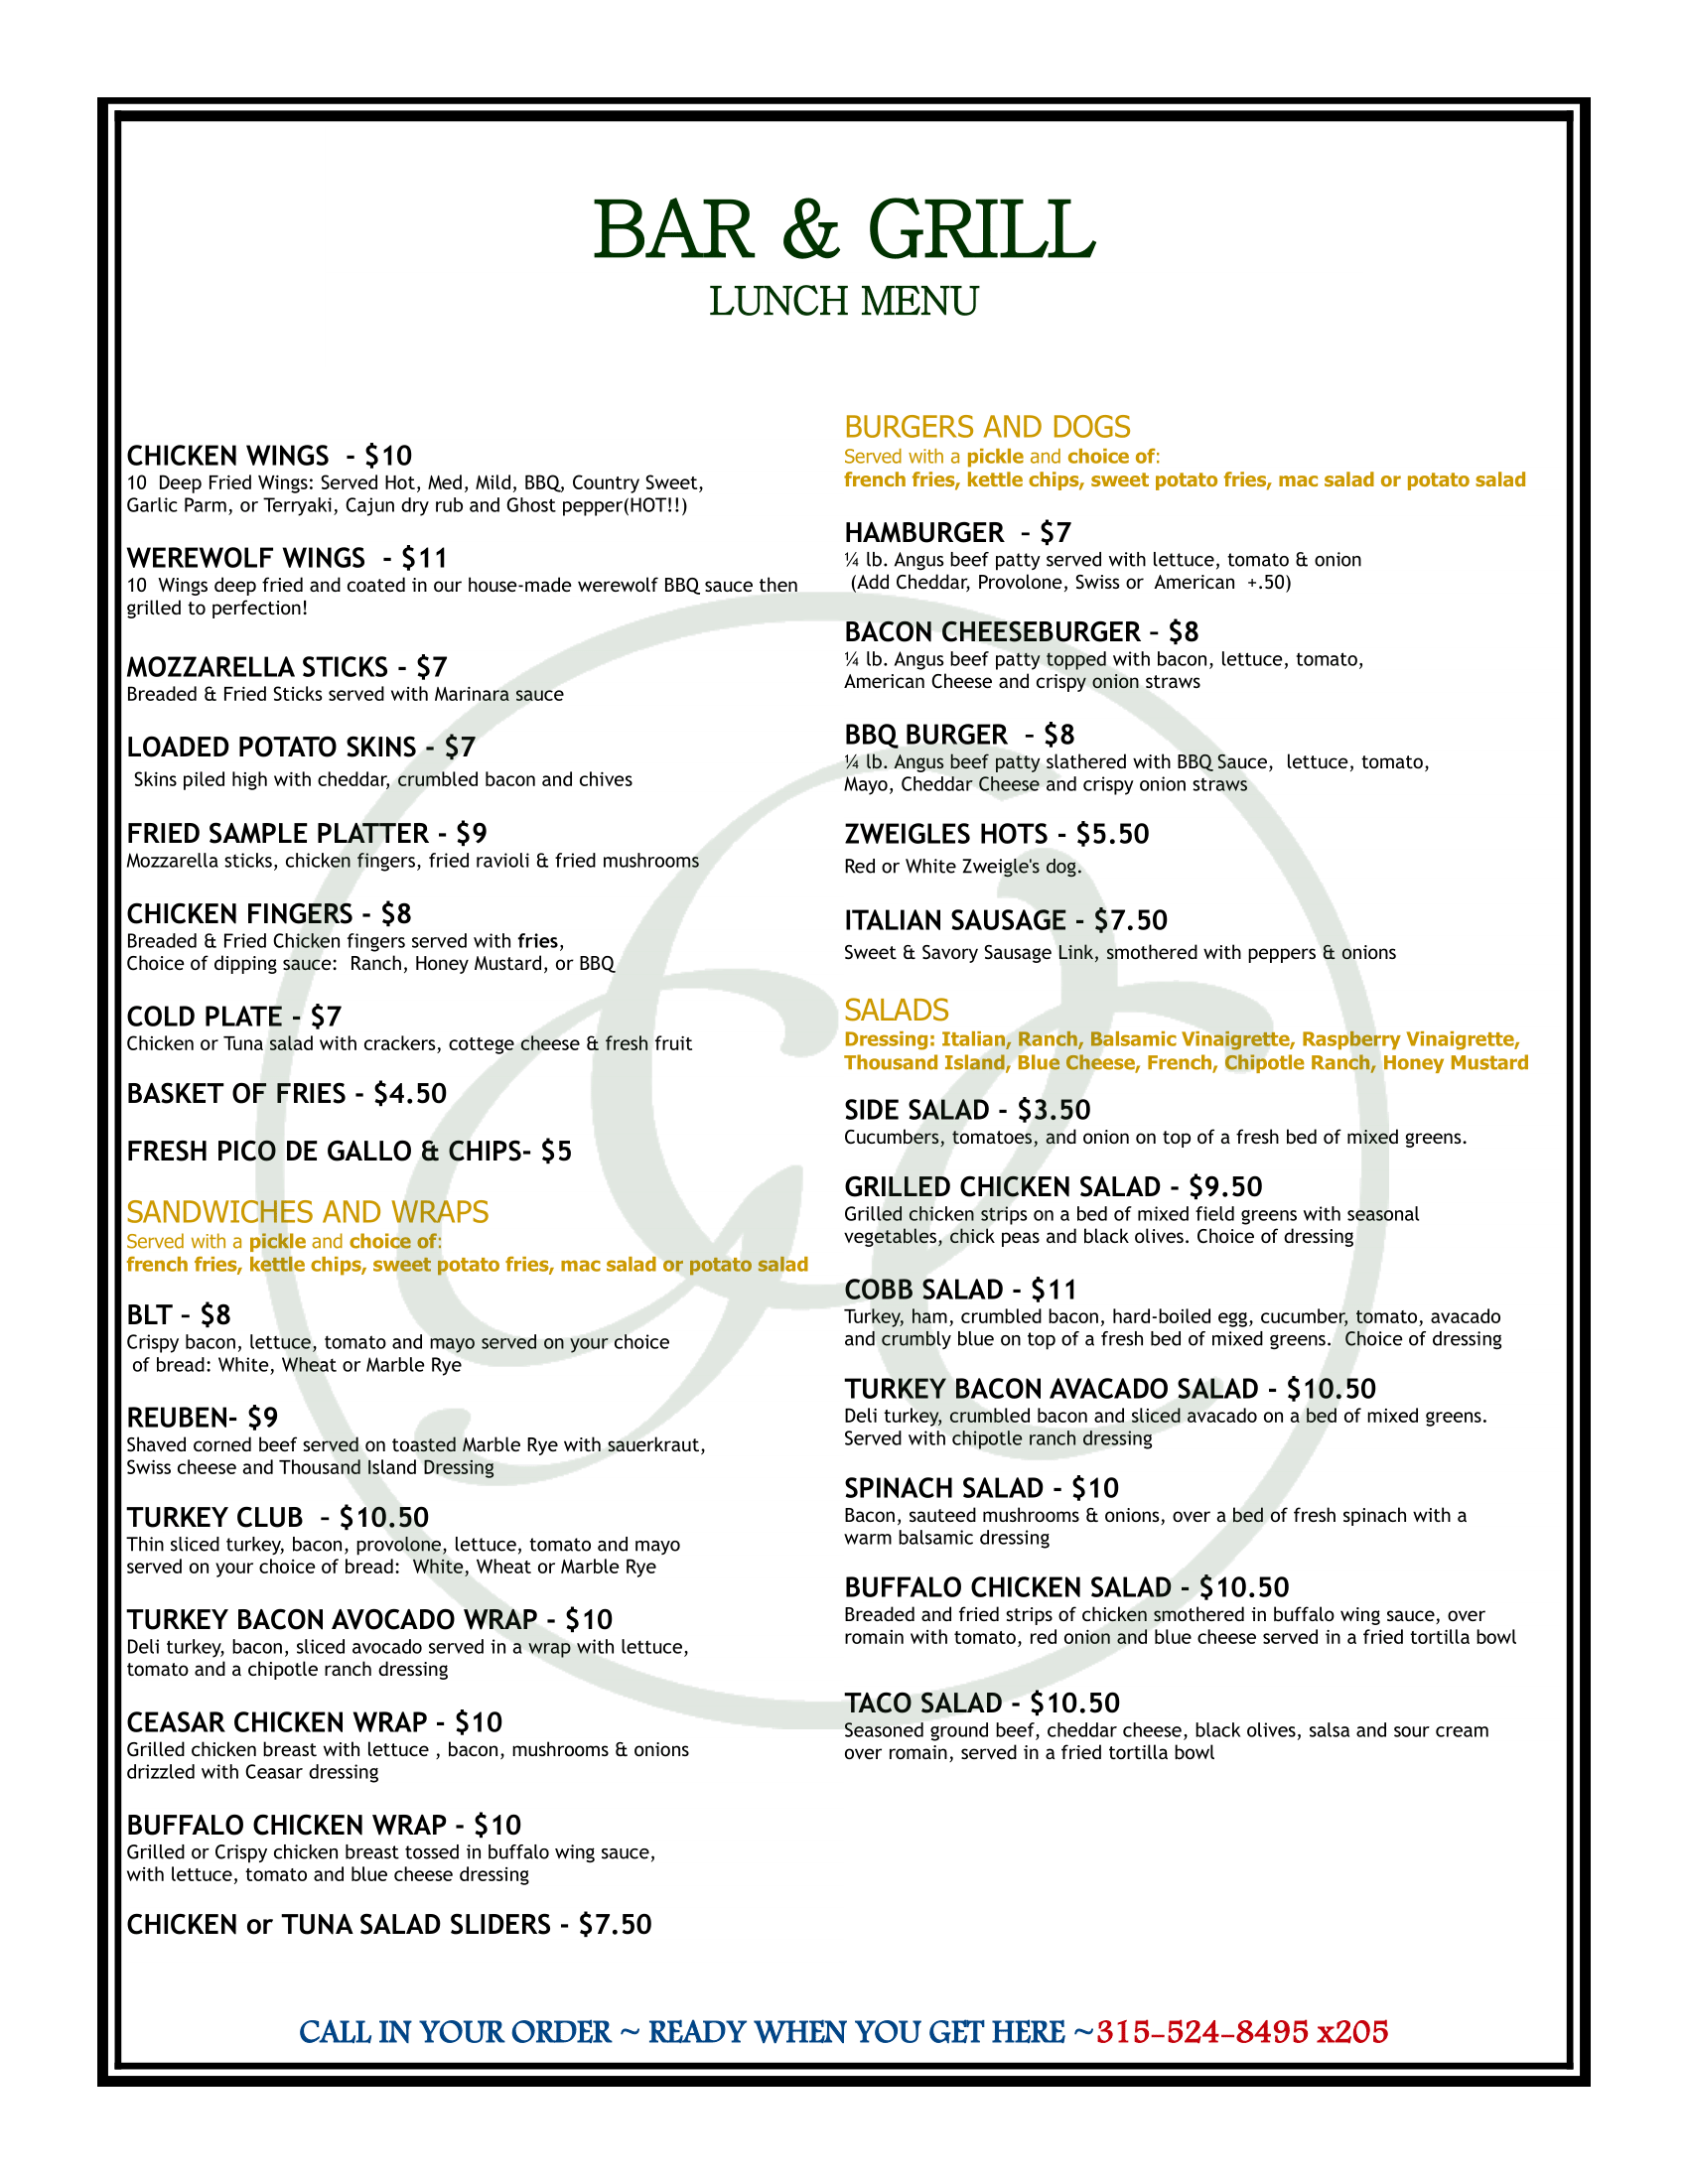 OGC Lunch Menu 2019 1 1